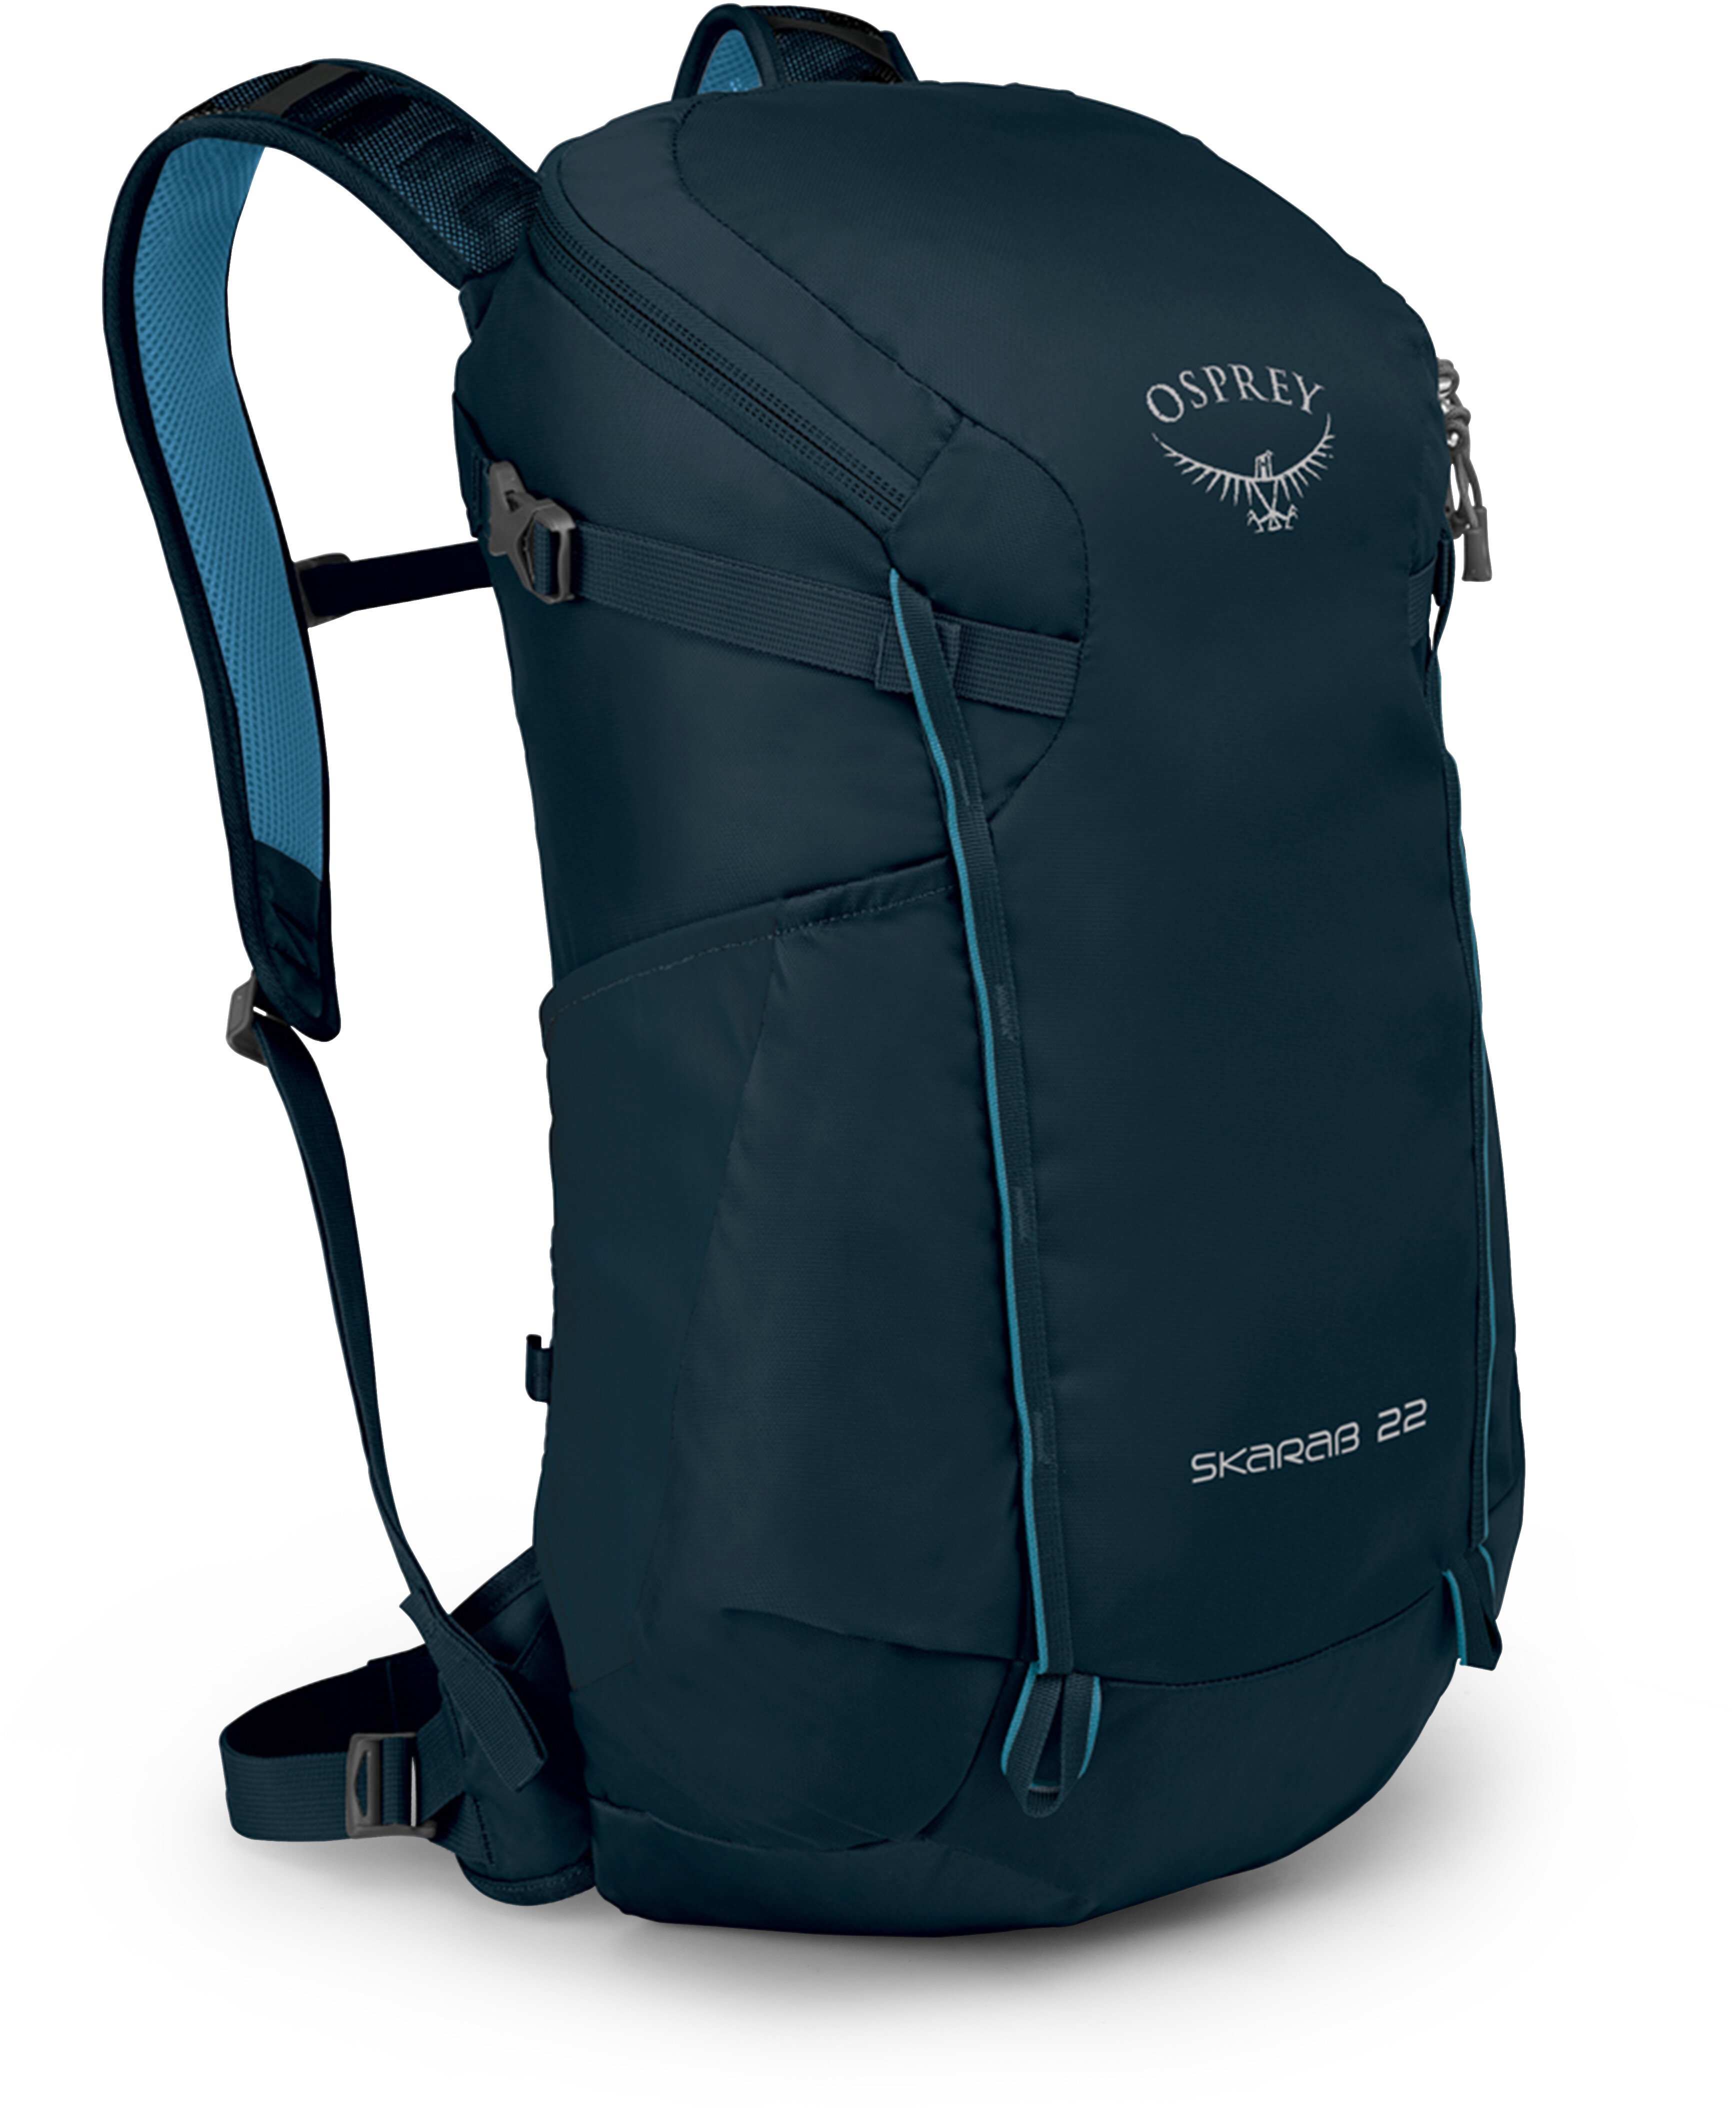 3d8562ae939 Osprey Skarab 22 Backpack Men blue at Addnature.co.uk